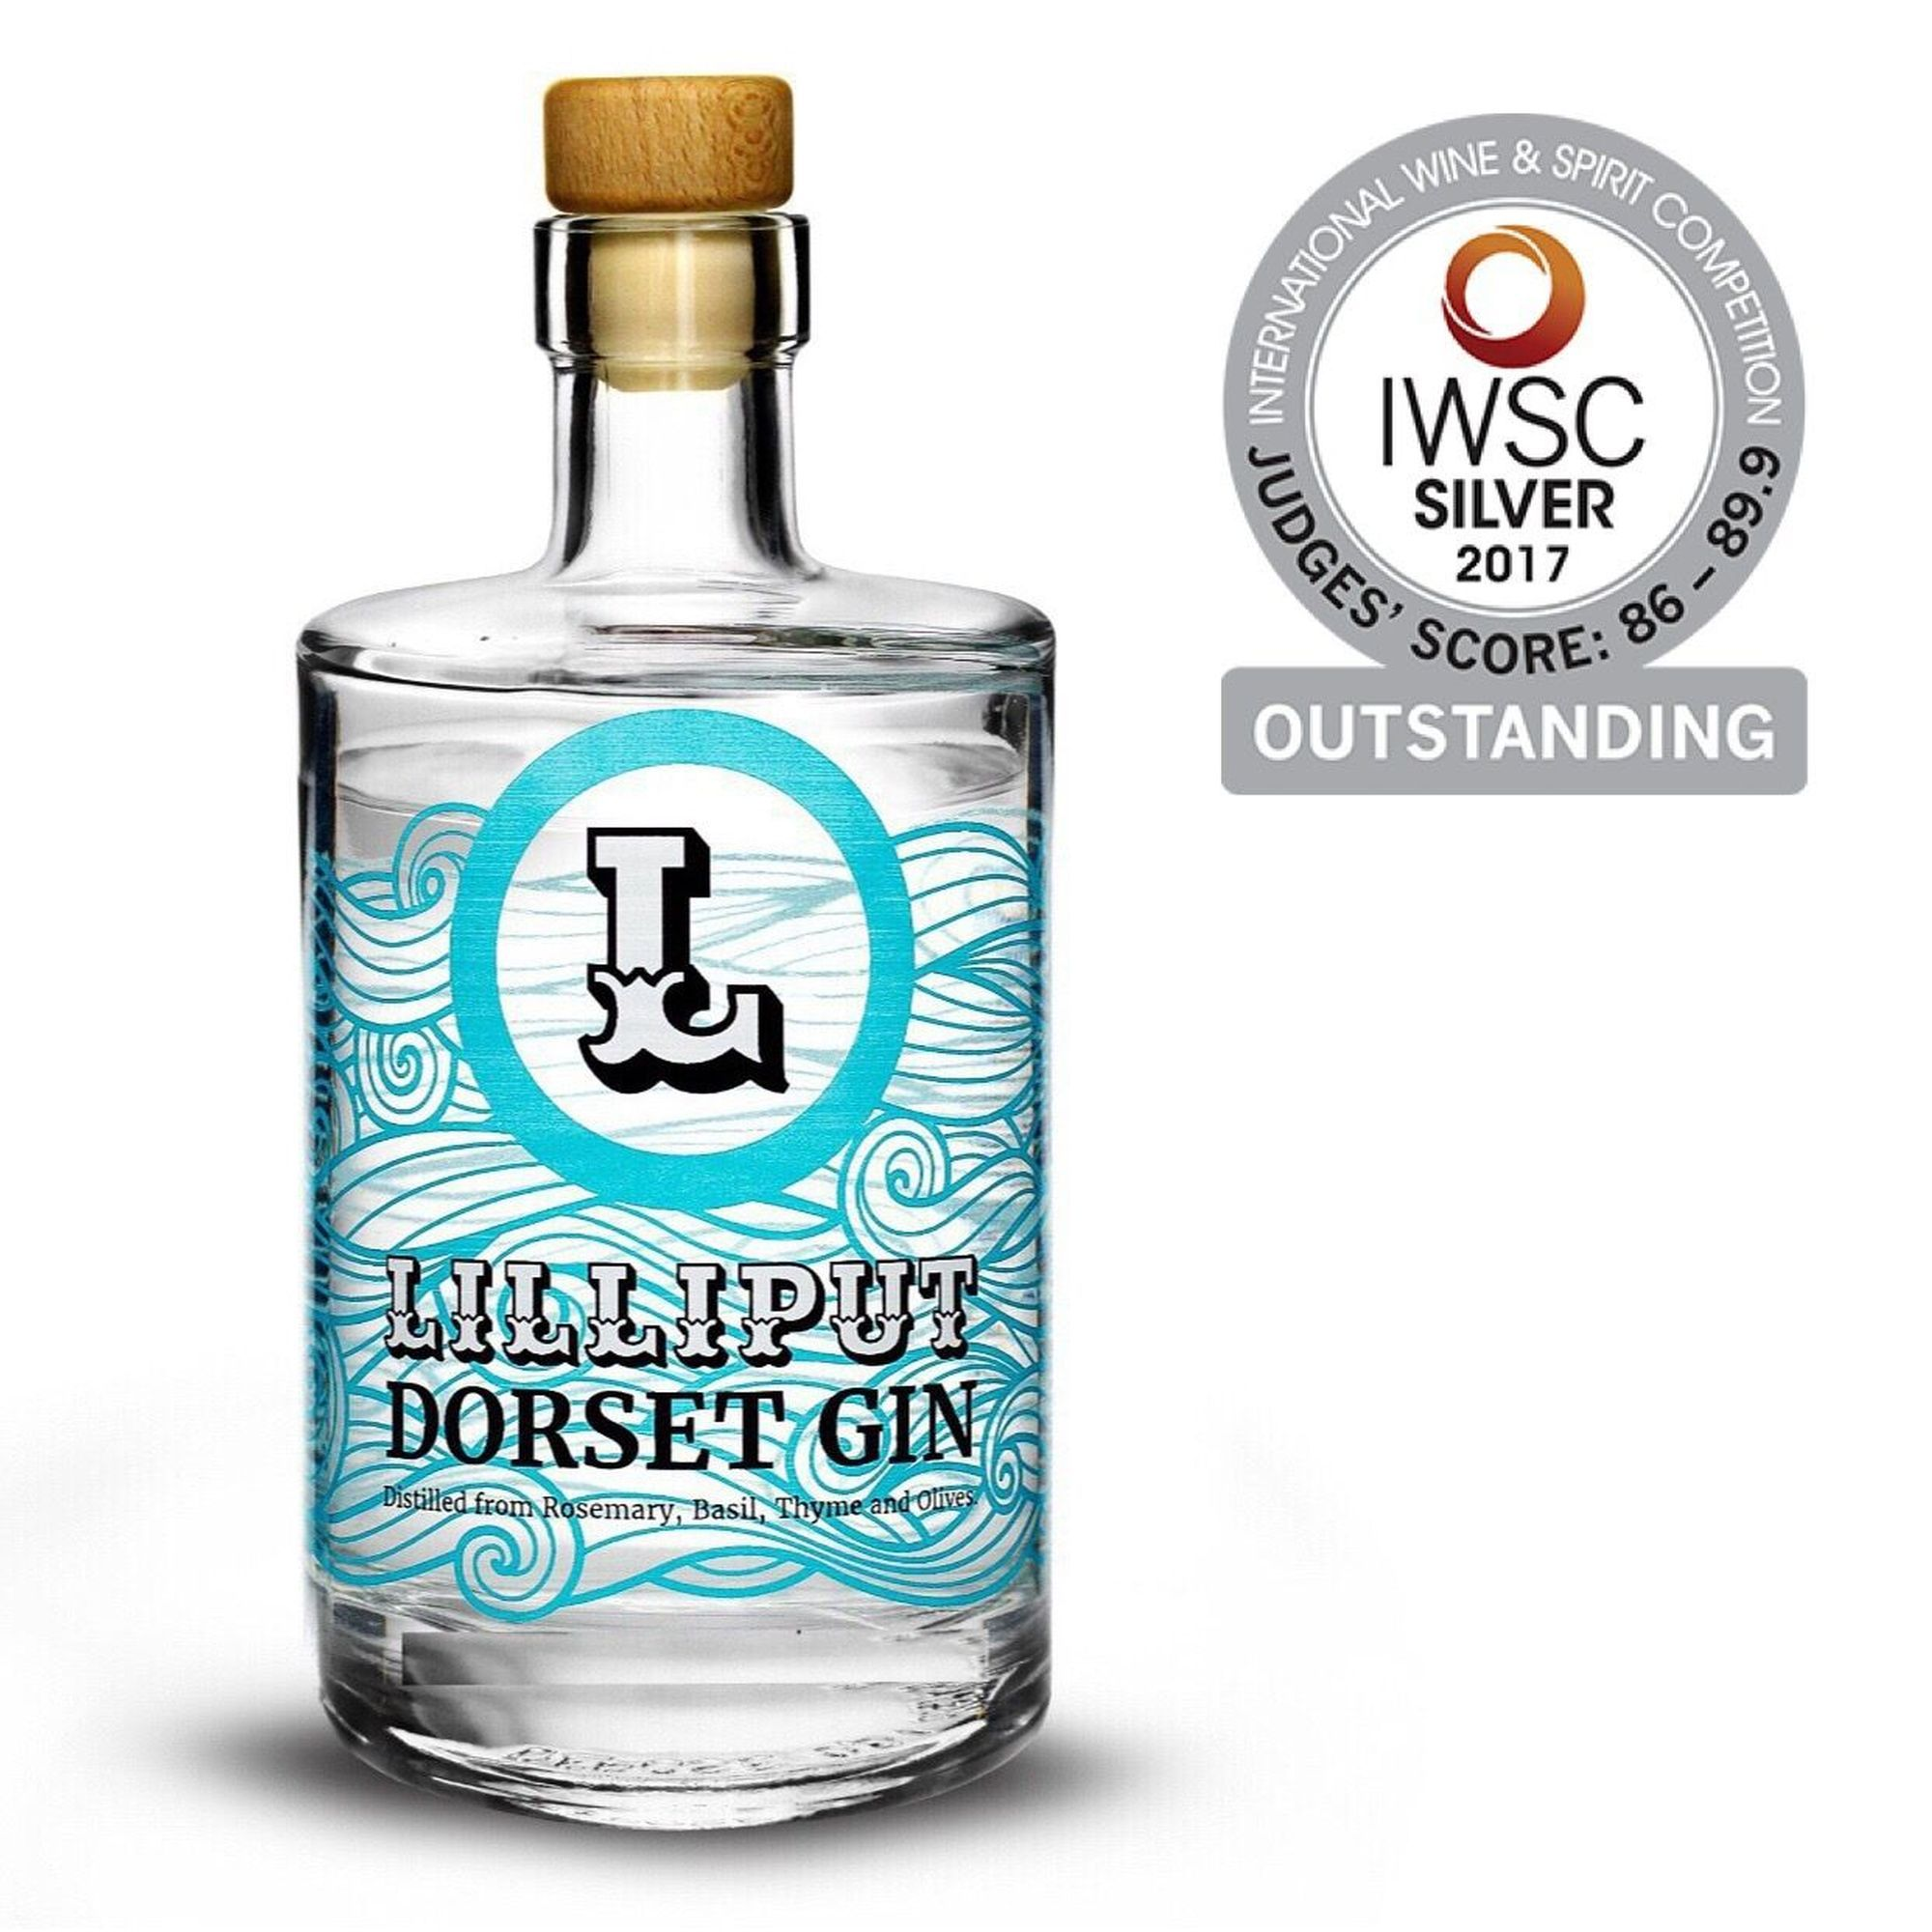 AWARD-WINNING: Lilliput Dorset Gin